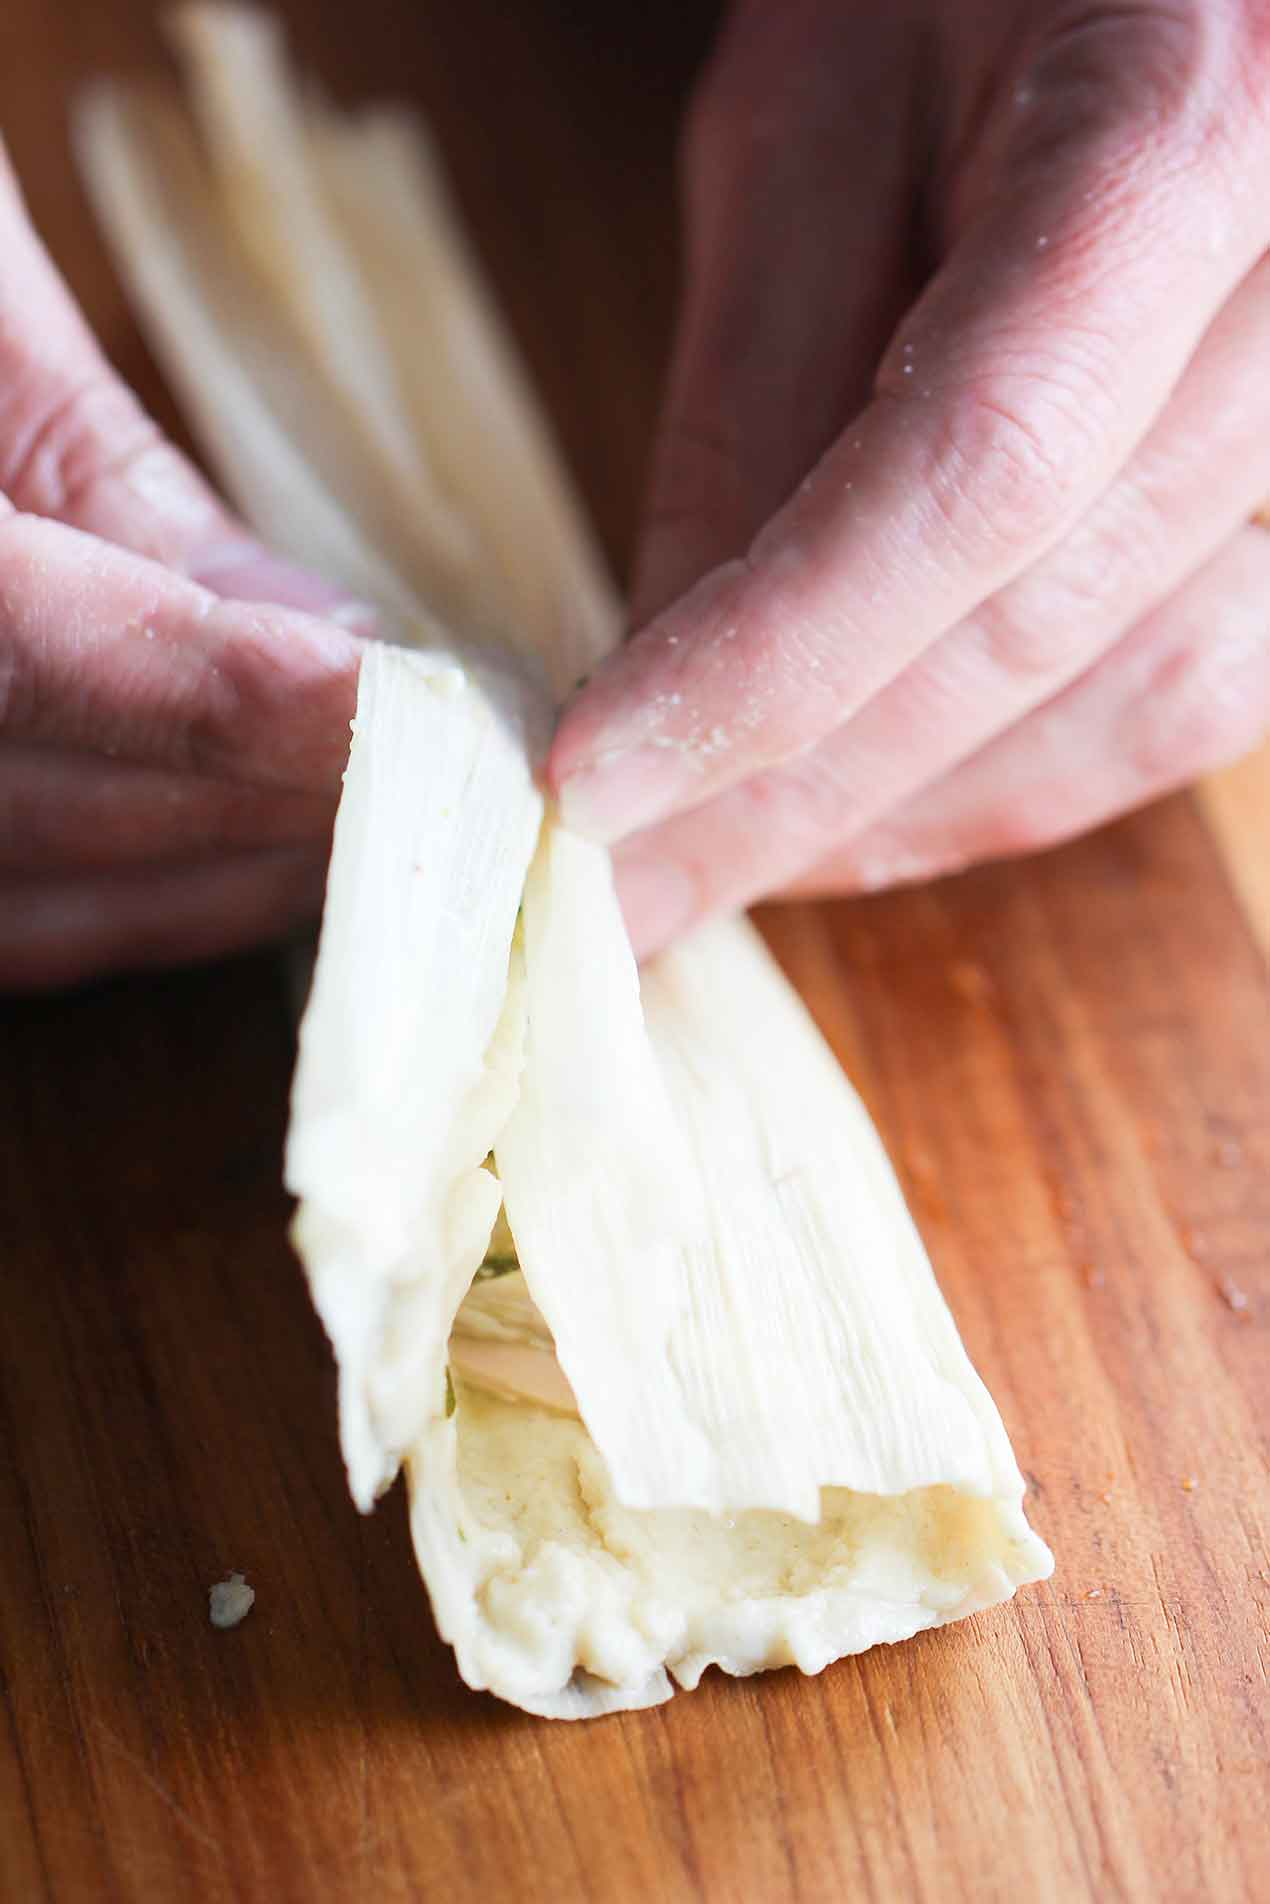 Authentic Tamales recipe